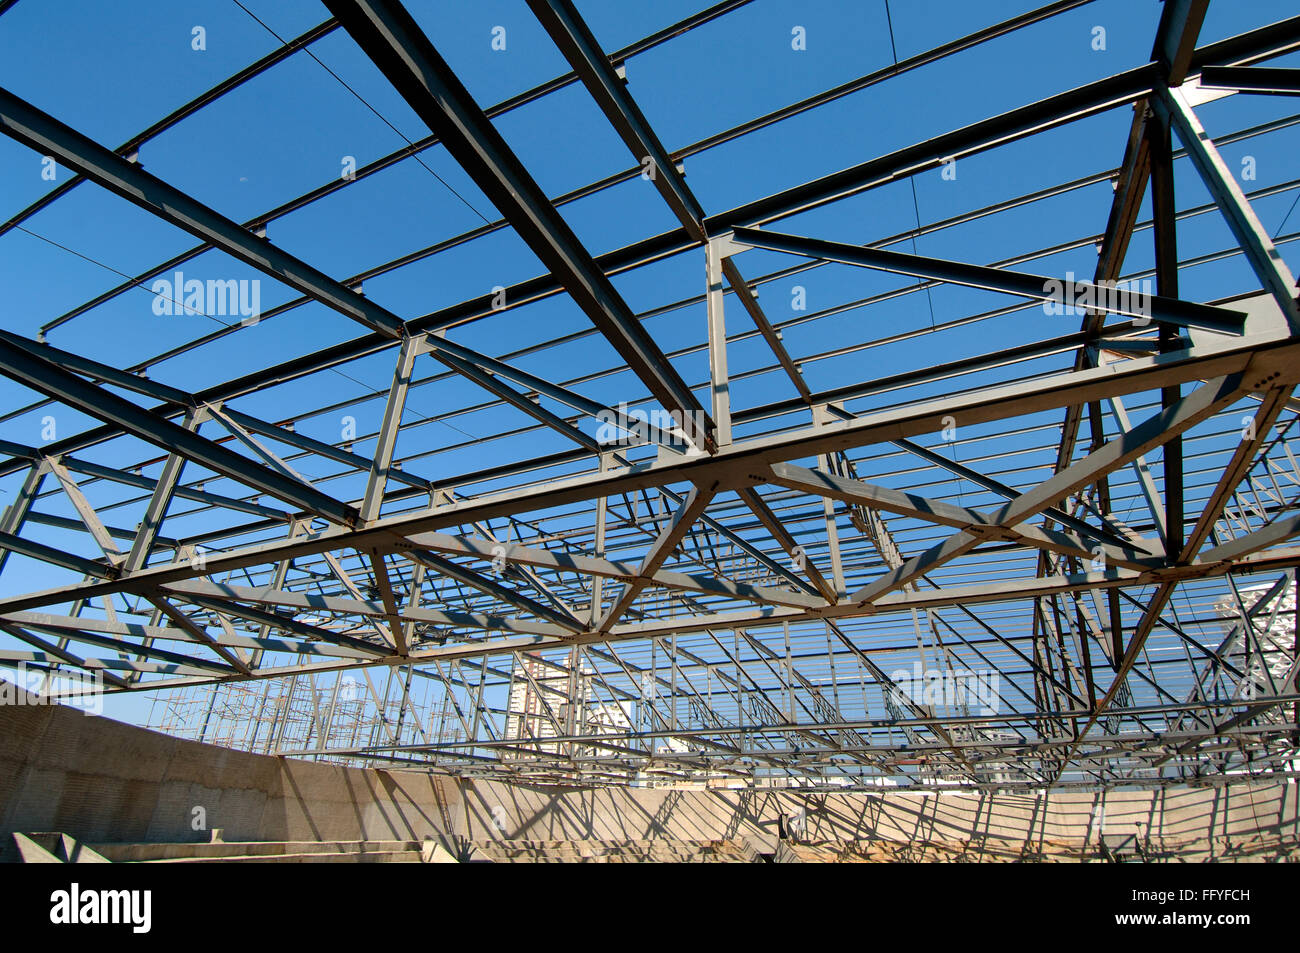 Stadium Roof Stock Photos Amp Stadium Roof Stock Images Alamy